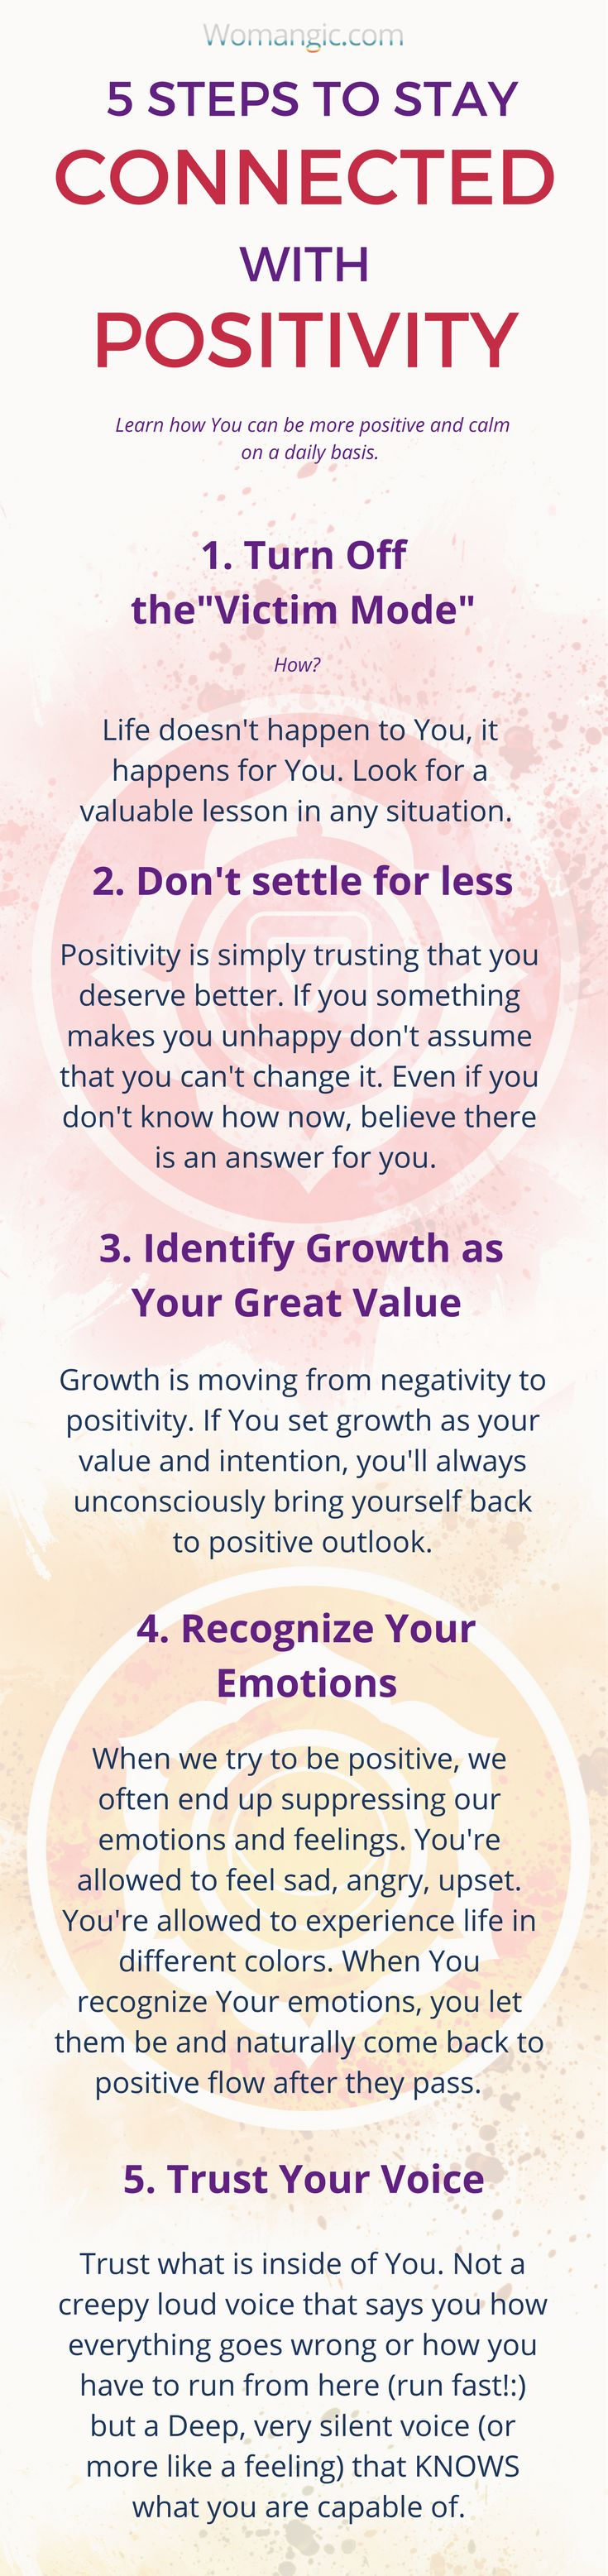 Positivity | Stay Positive | How To Stay Positive | Anxiety, Anxiety Relief, Anxiety Help, Anxiety Social, Anxiety Overcoming, Anxiety Attack | Meditation Tips | Meditation Techniques | Meditation Ideas | Meditation Inspiration | Mindfulness Exercises | Mindfulness Techniques | Mindfulness Practice | Mindfulness Tips | Mindfulness Therapy | Mindfulness Ideas | Mindfulness Inspiration | Mindfulness Teaching | Mindfulness Living | Chakra Balancing | Chakra articles, Chakra Healing...